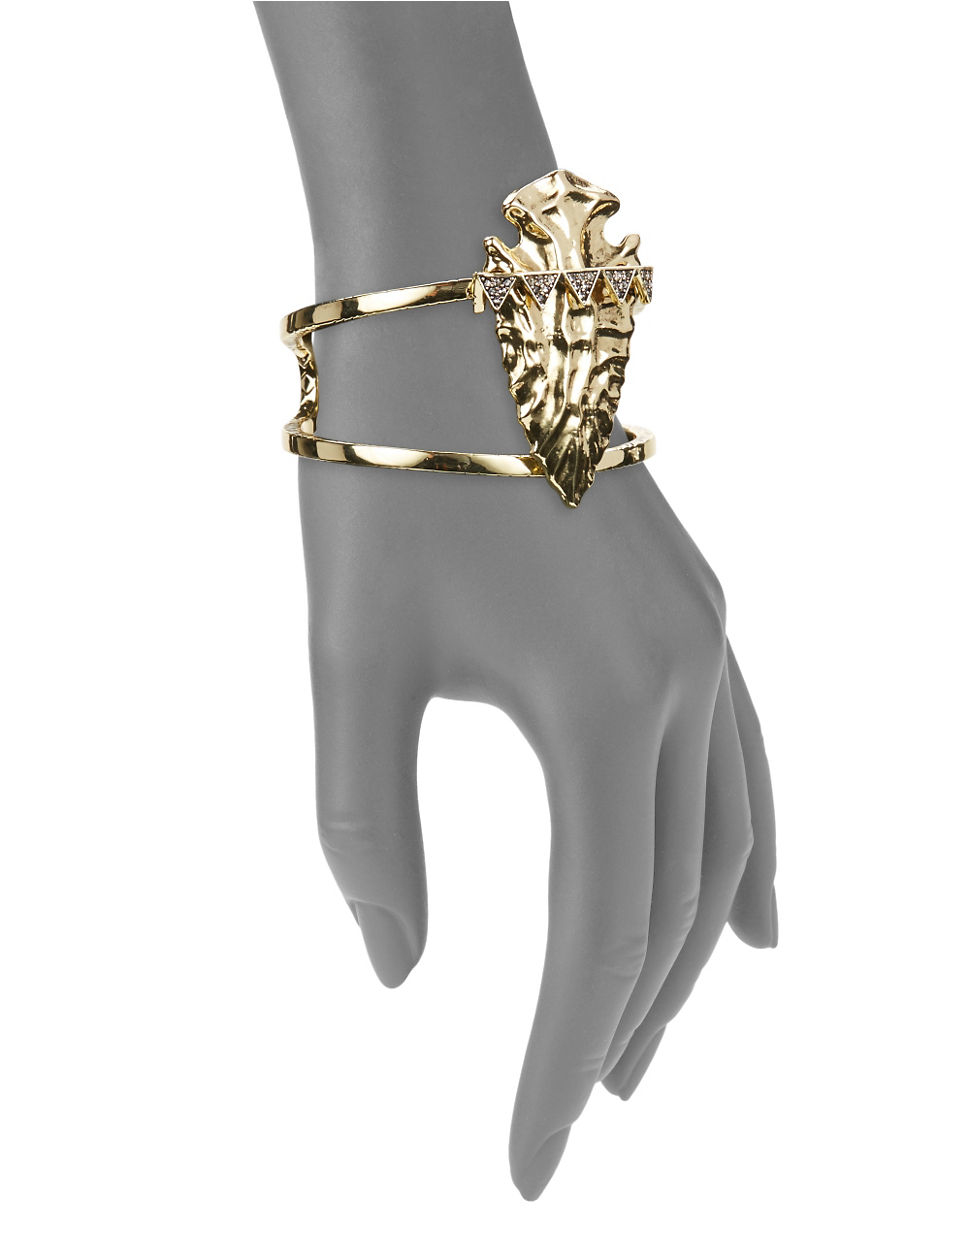 House Of Harlow House of Harlow Mojave Cuff in Metallic Gold LlwyM